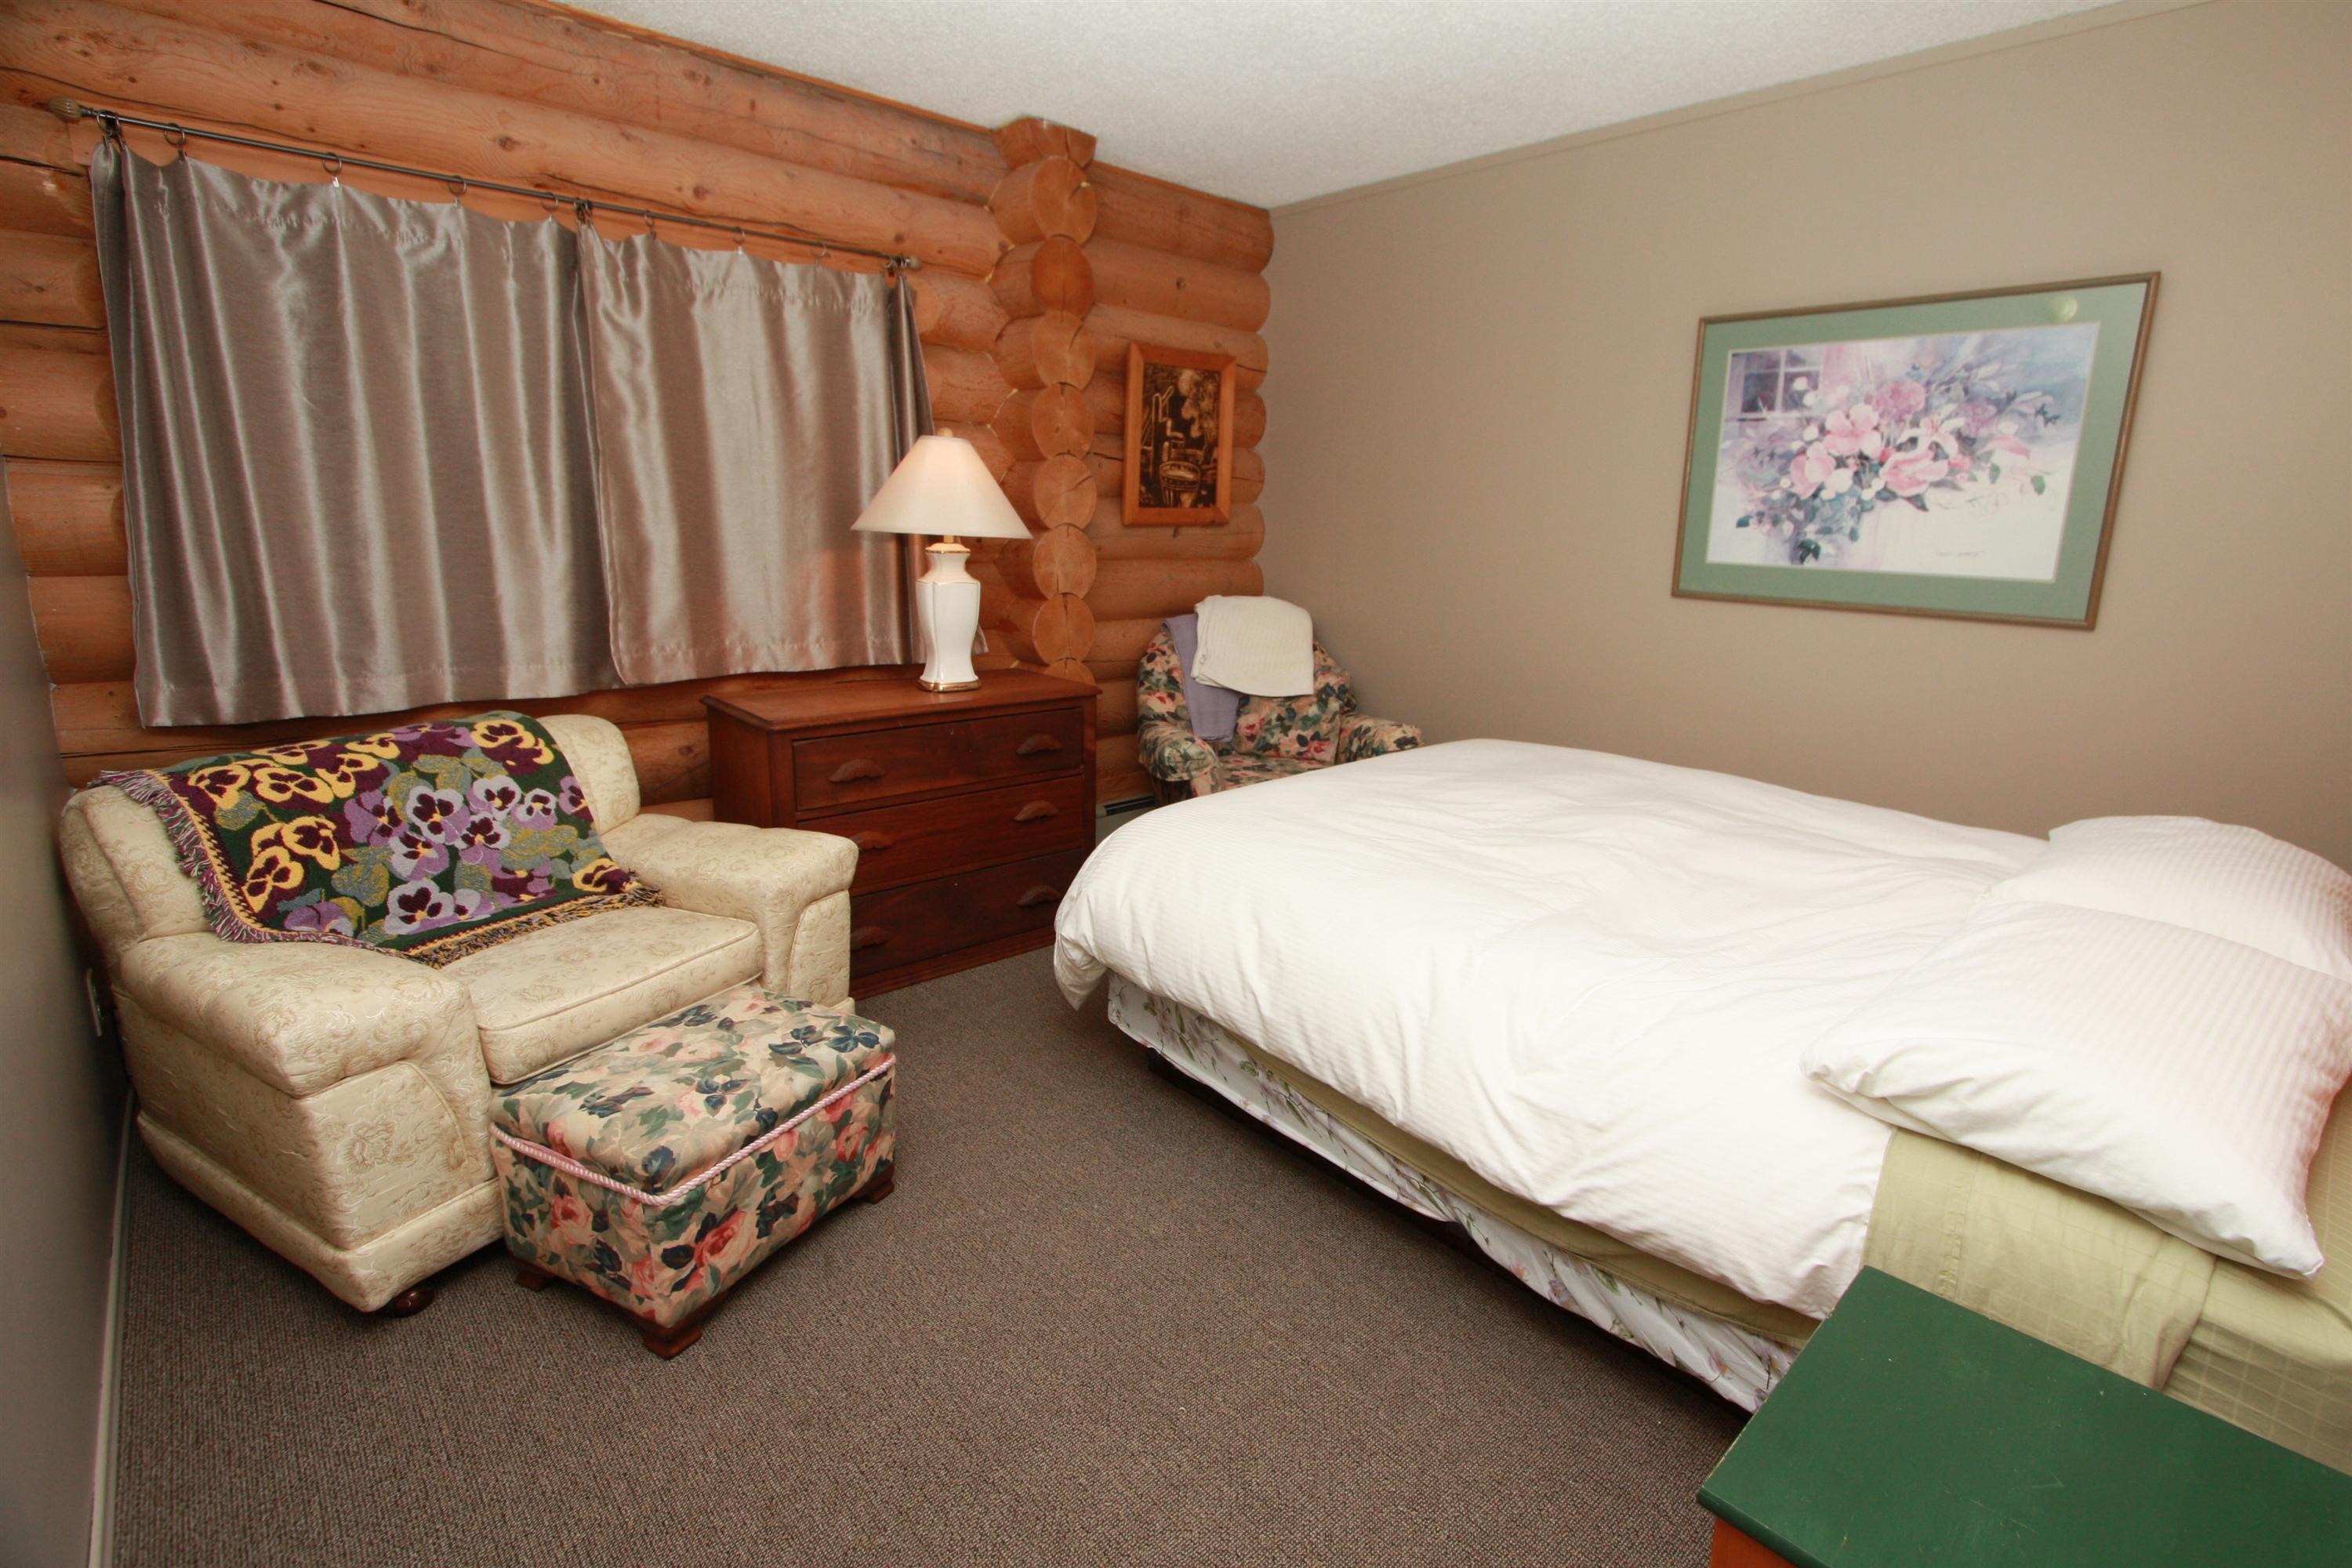 bed & breakfast accommodation in golden, bc